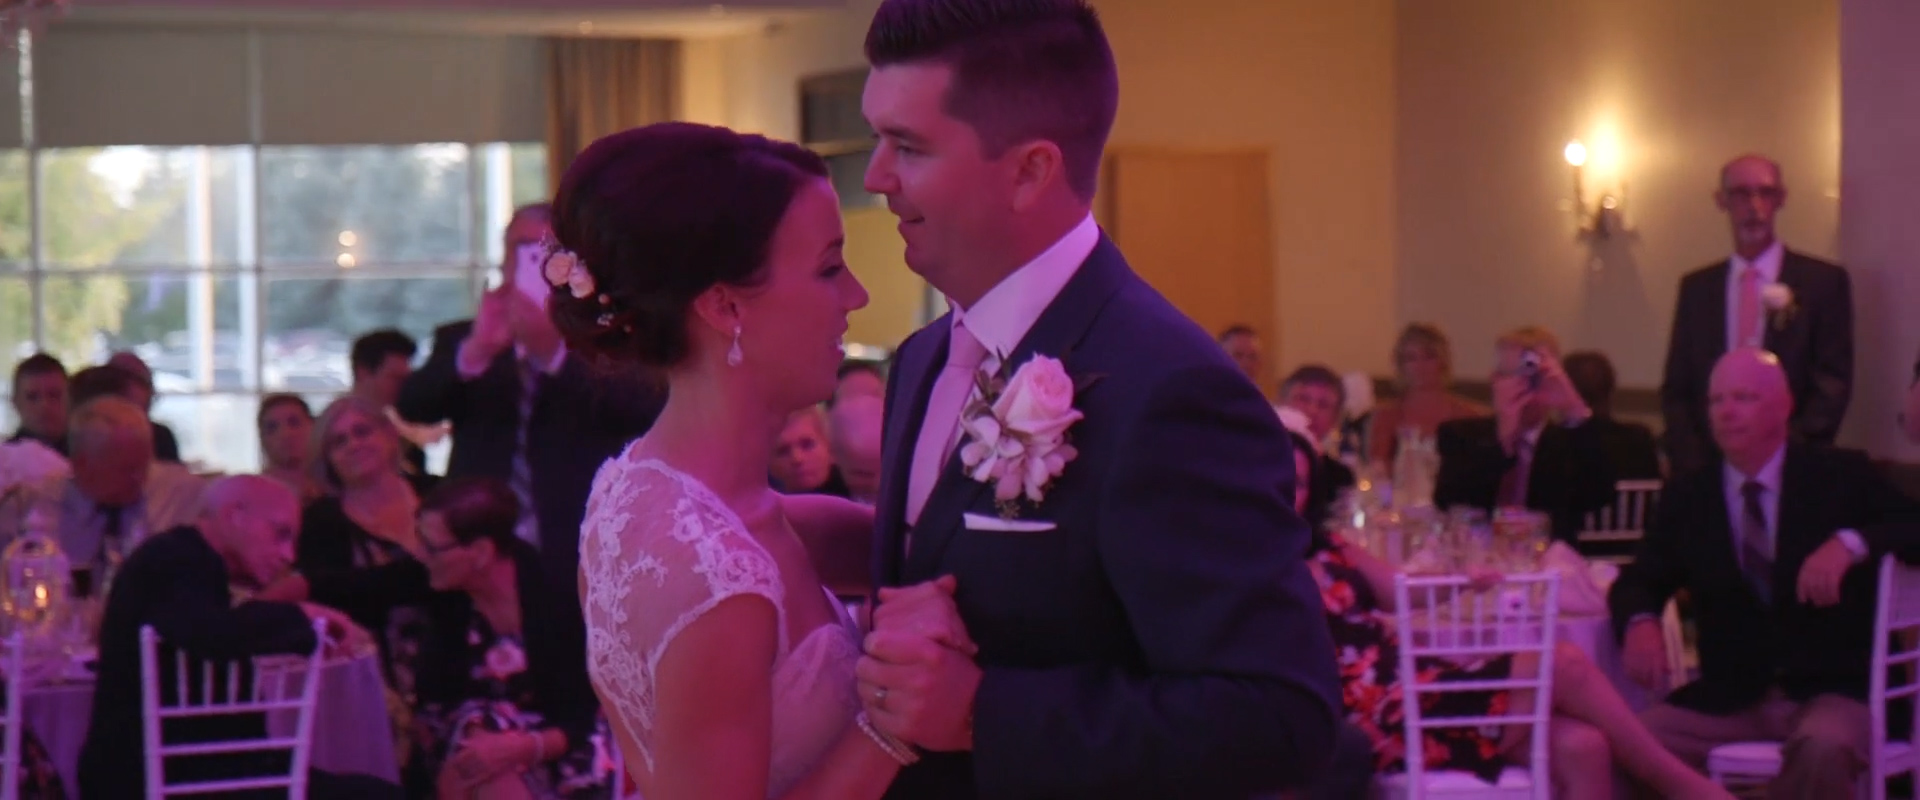 Image of a wedding couple dancing taken from one of our Toronto Wedding Videography videos